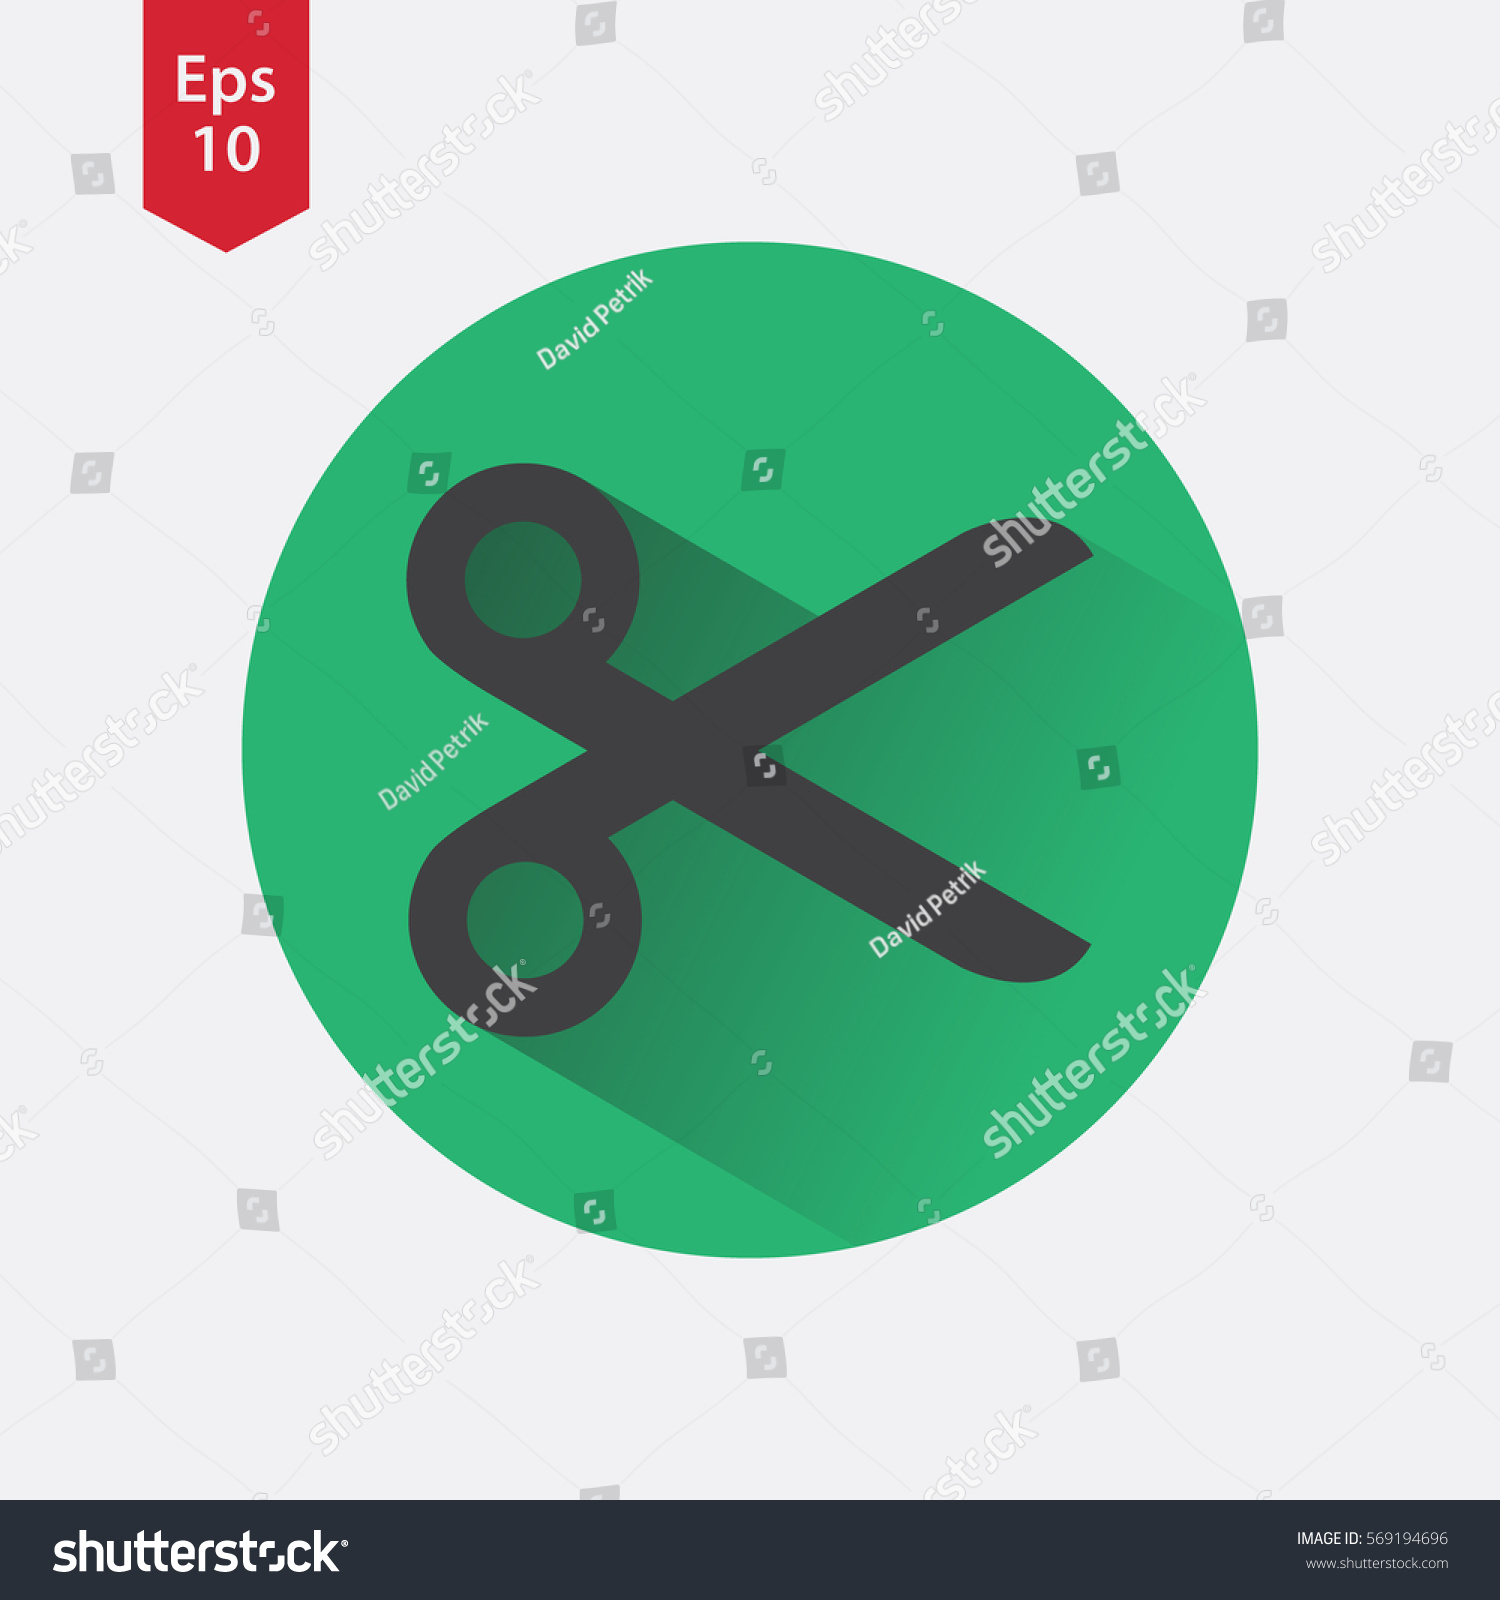 Scissors icon circle simple flat symbol stock vector 569194696 scissors icon in circle simple flat symbol of shears vector illustrated sign biocorpaavc